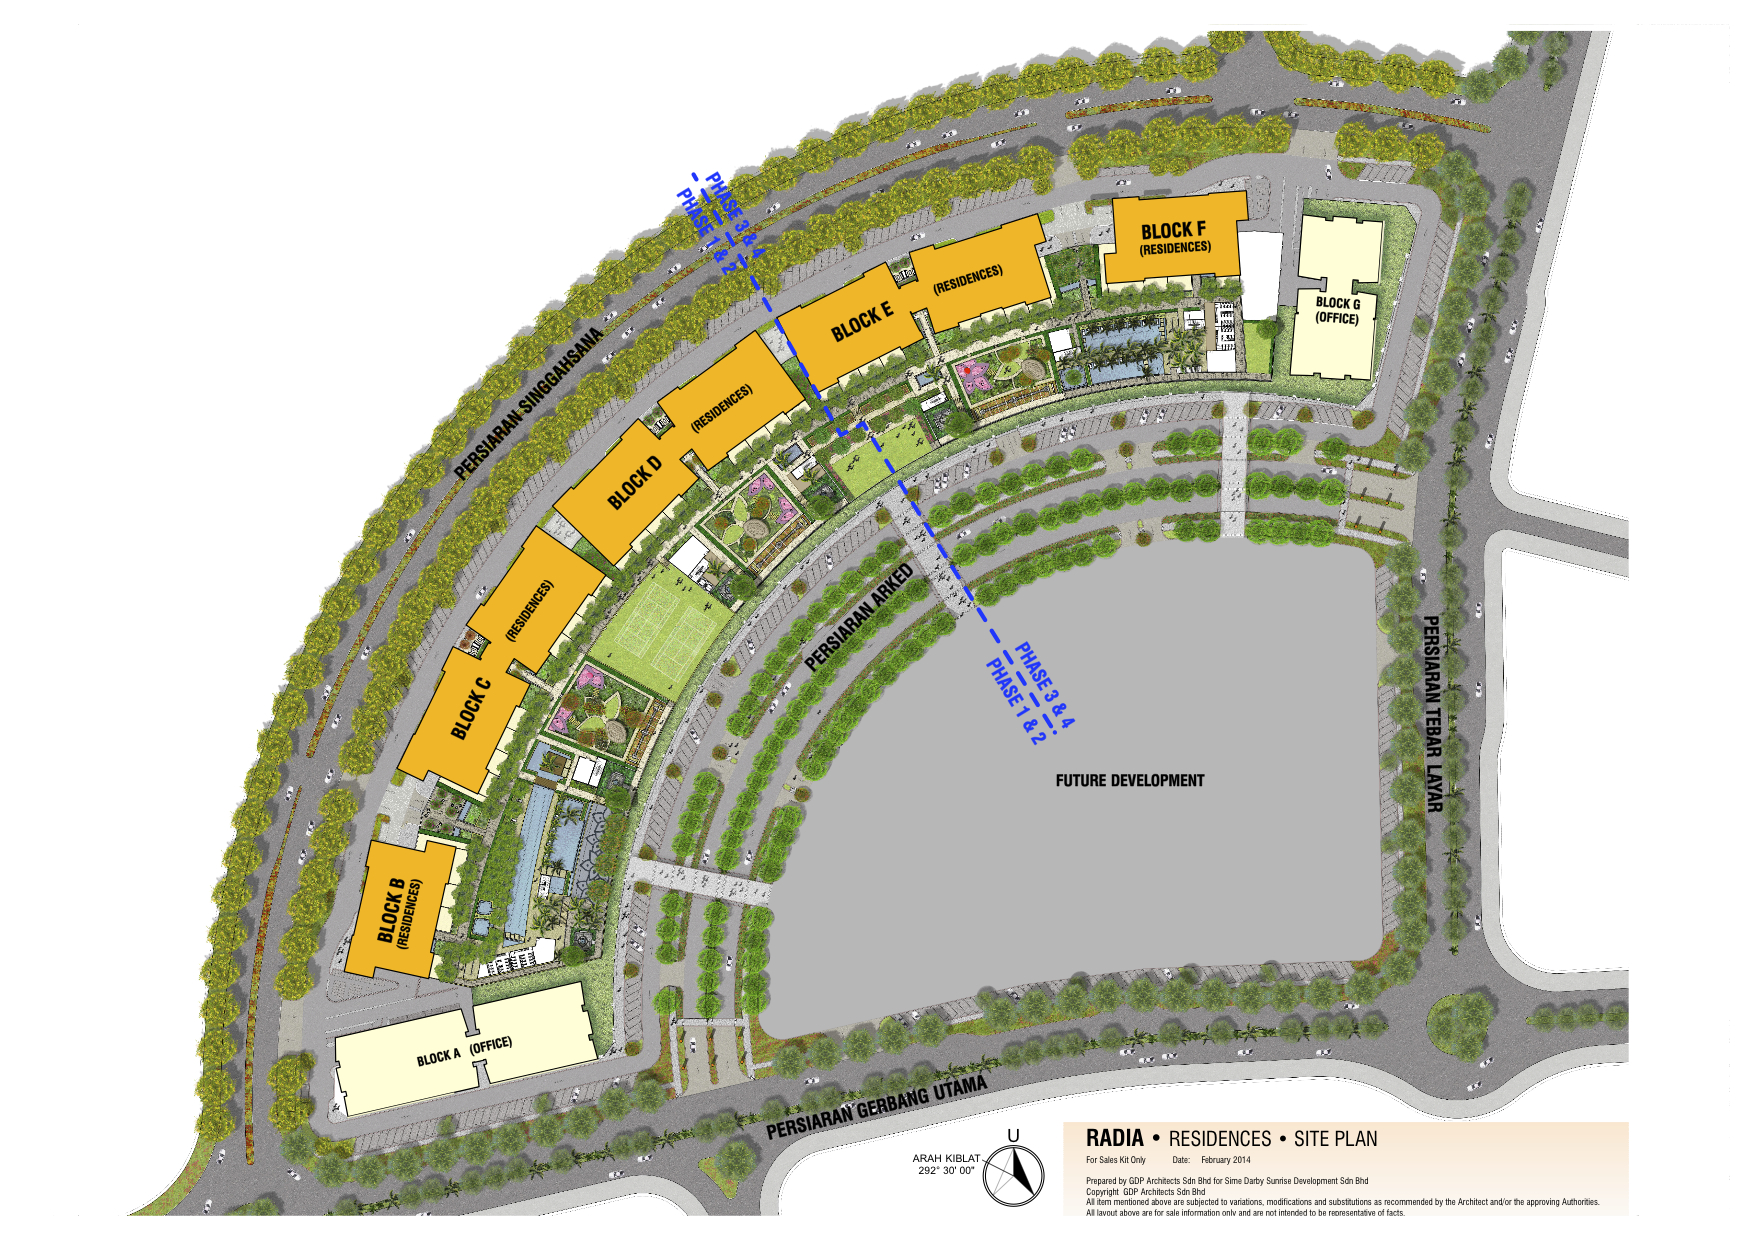 Site Plan of Radia Residences